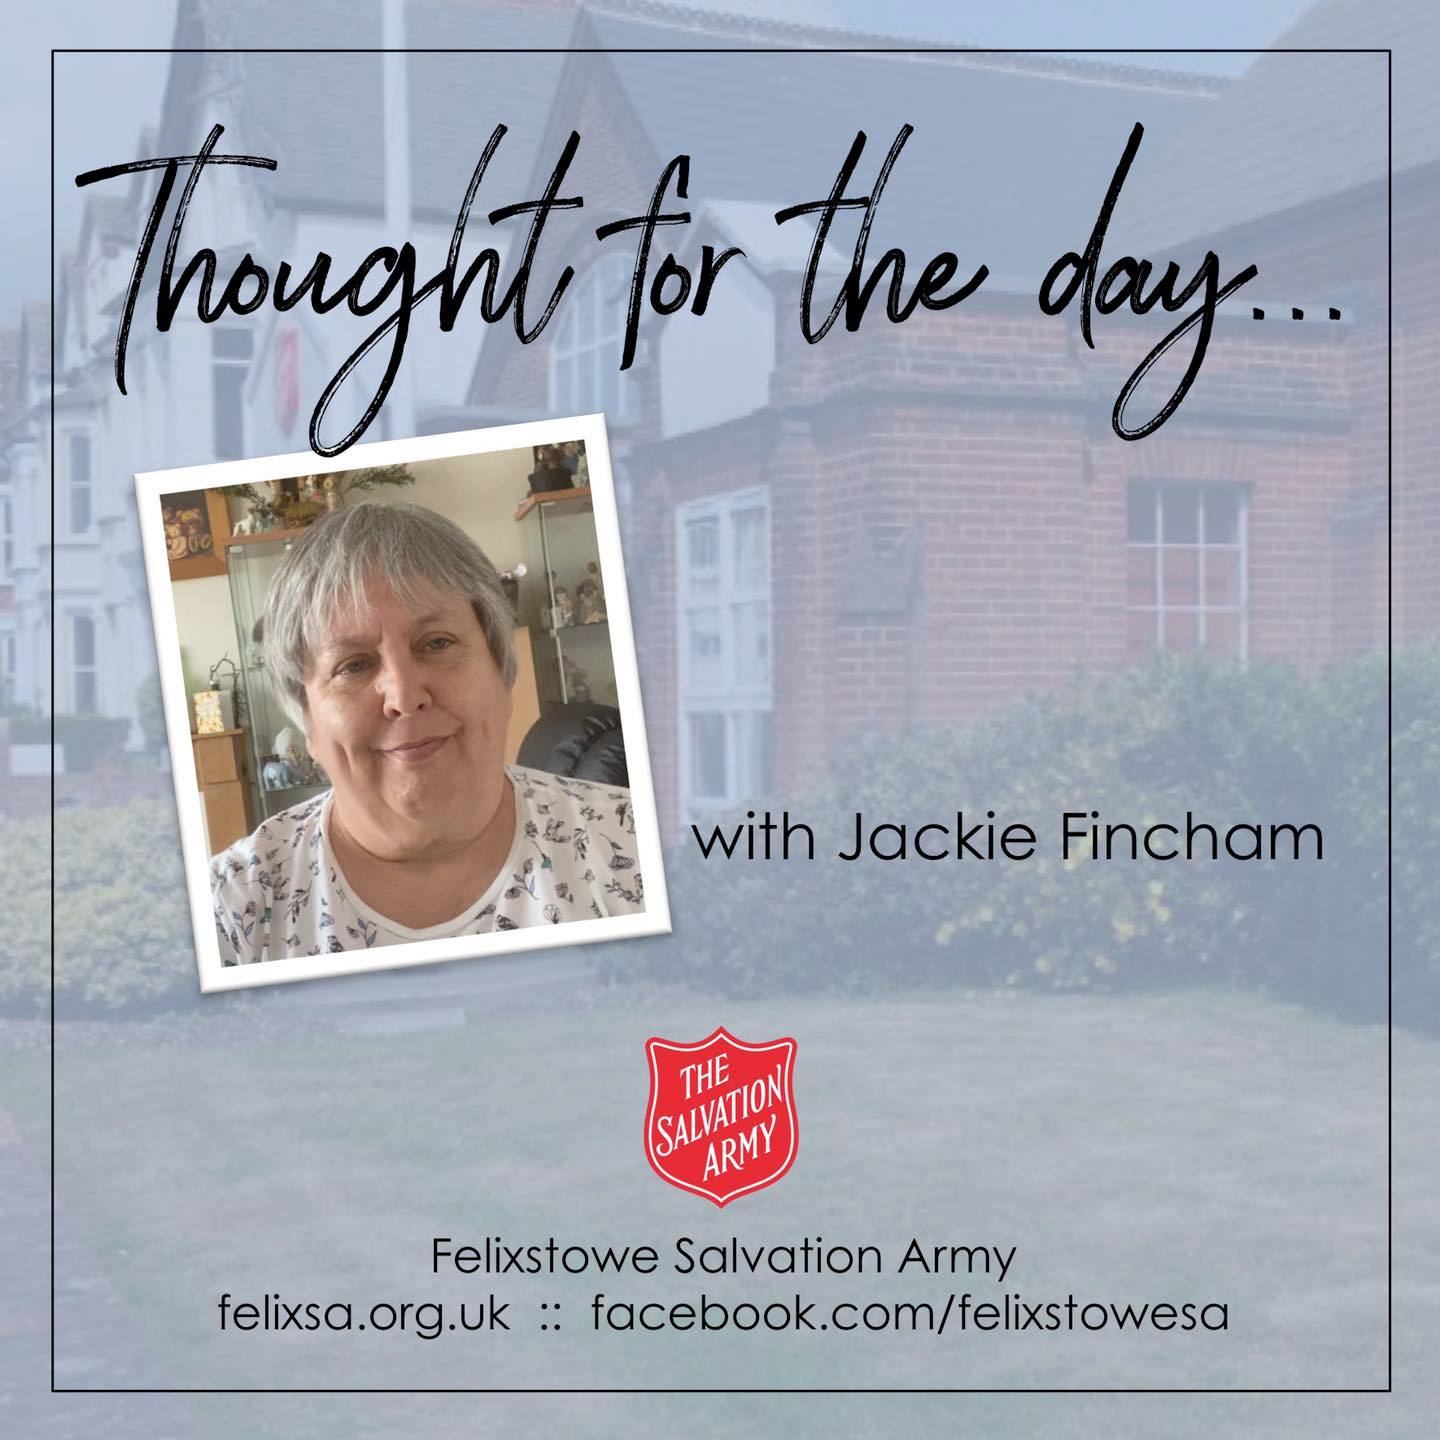 Thought for the Day with Jackie Fincham